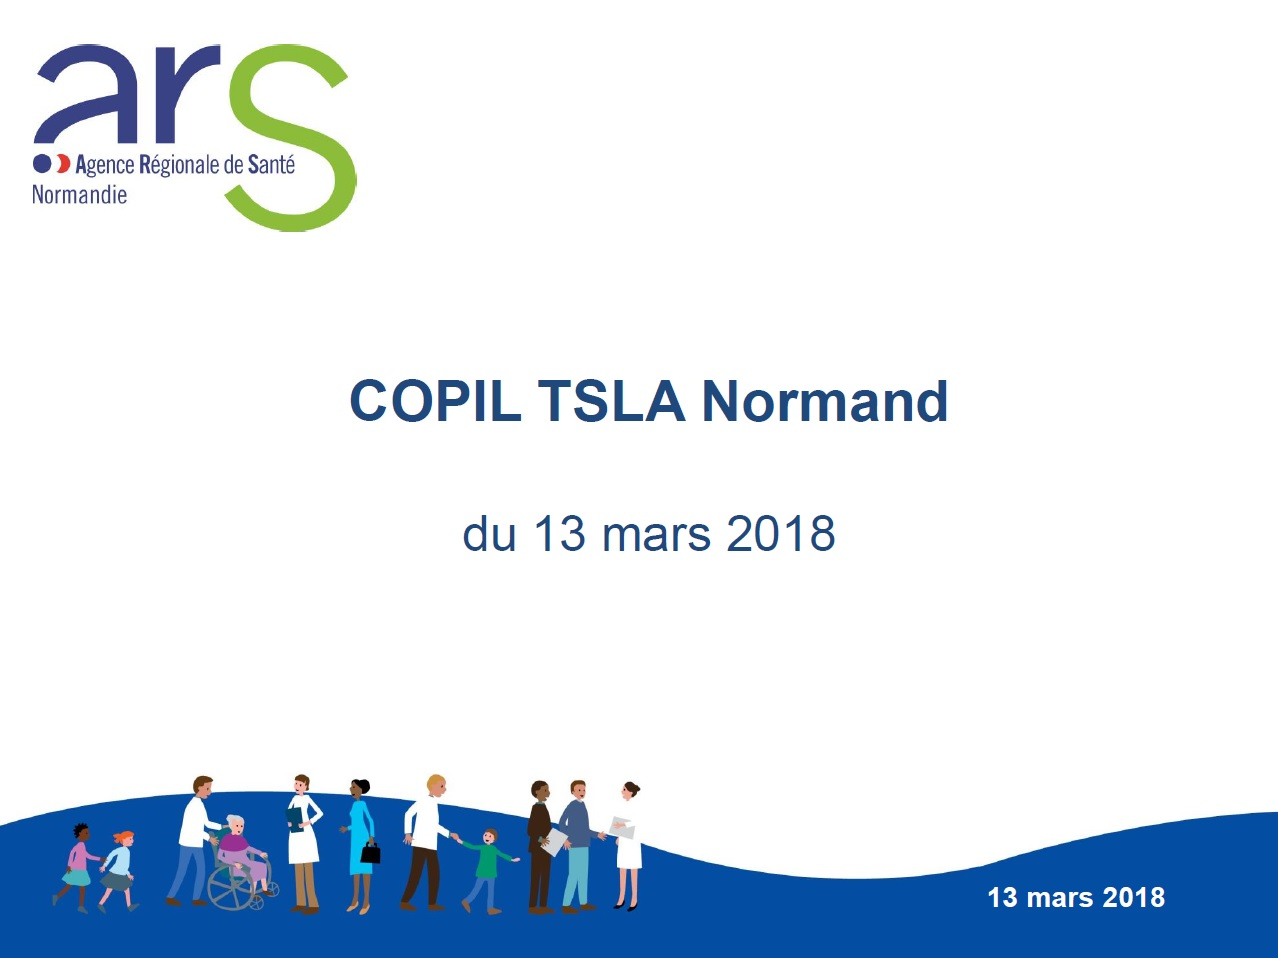 Copil normand TSLA